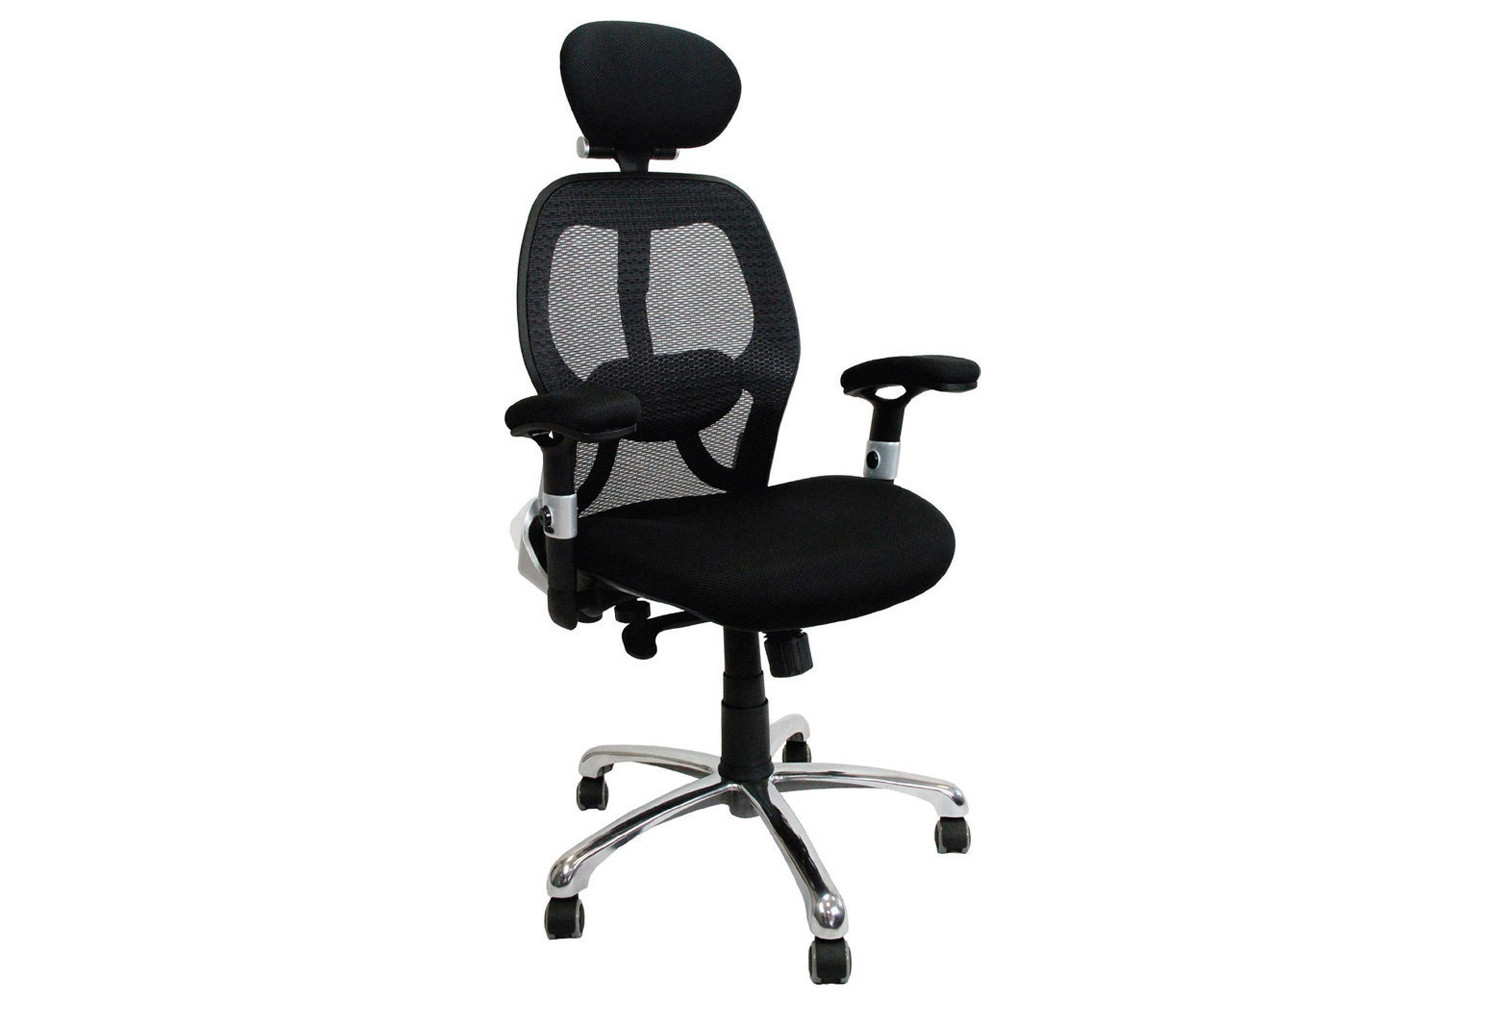 Kato executive mesh back chair